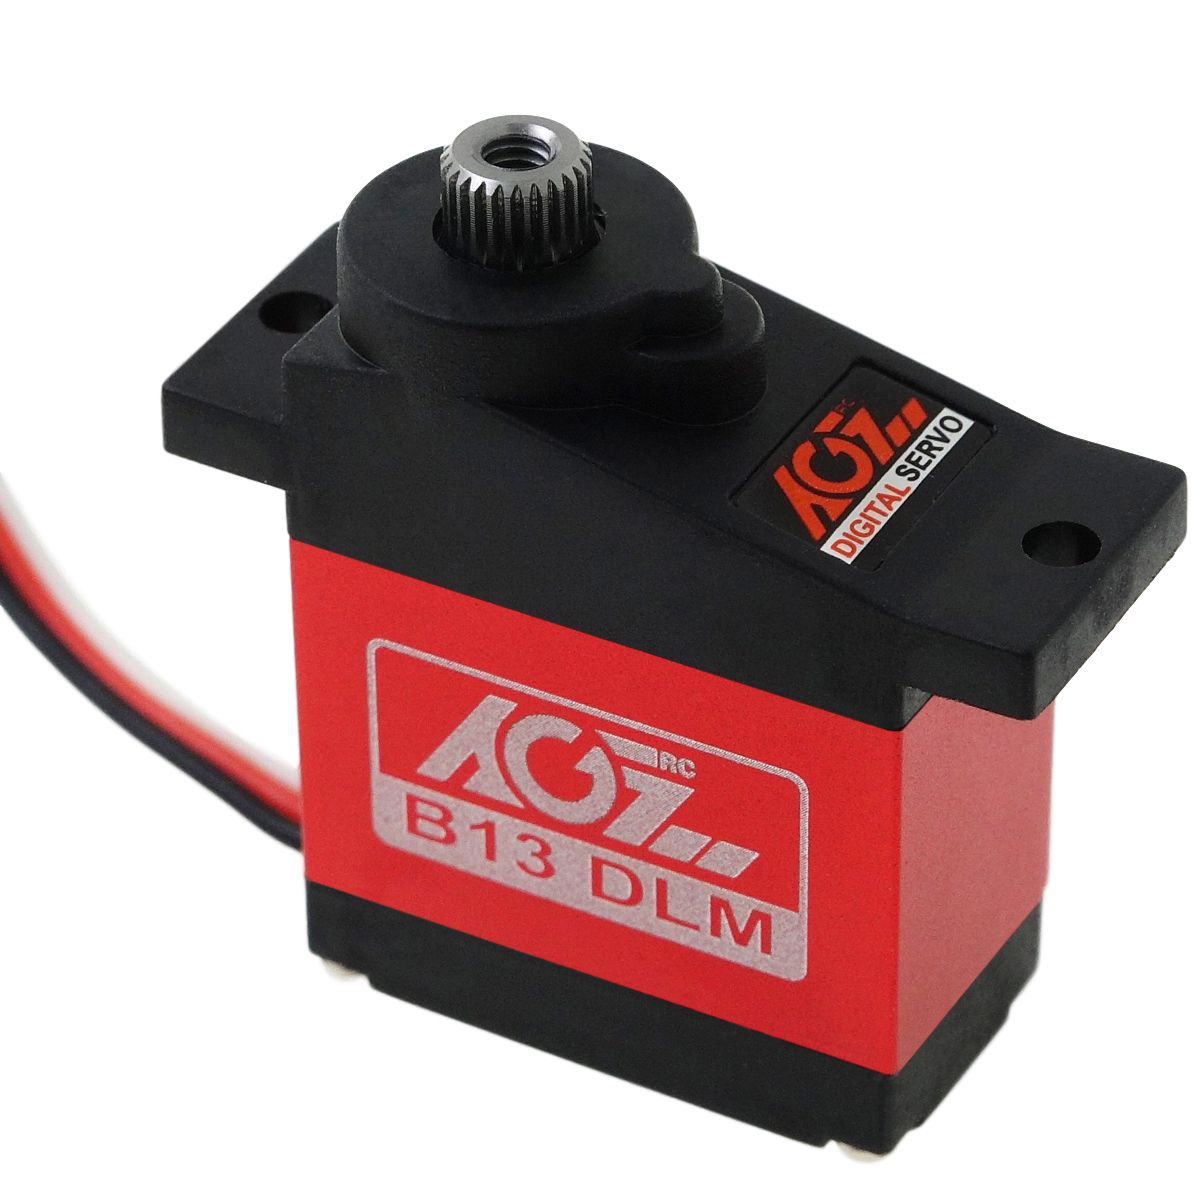 AGFRC B13DLM 3.8KG High Torque 9g Aluminum Case Metal Gear Digital Micro Servo